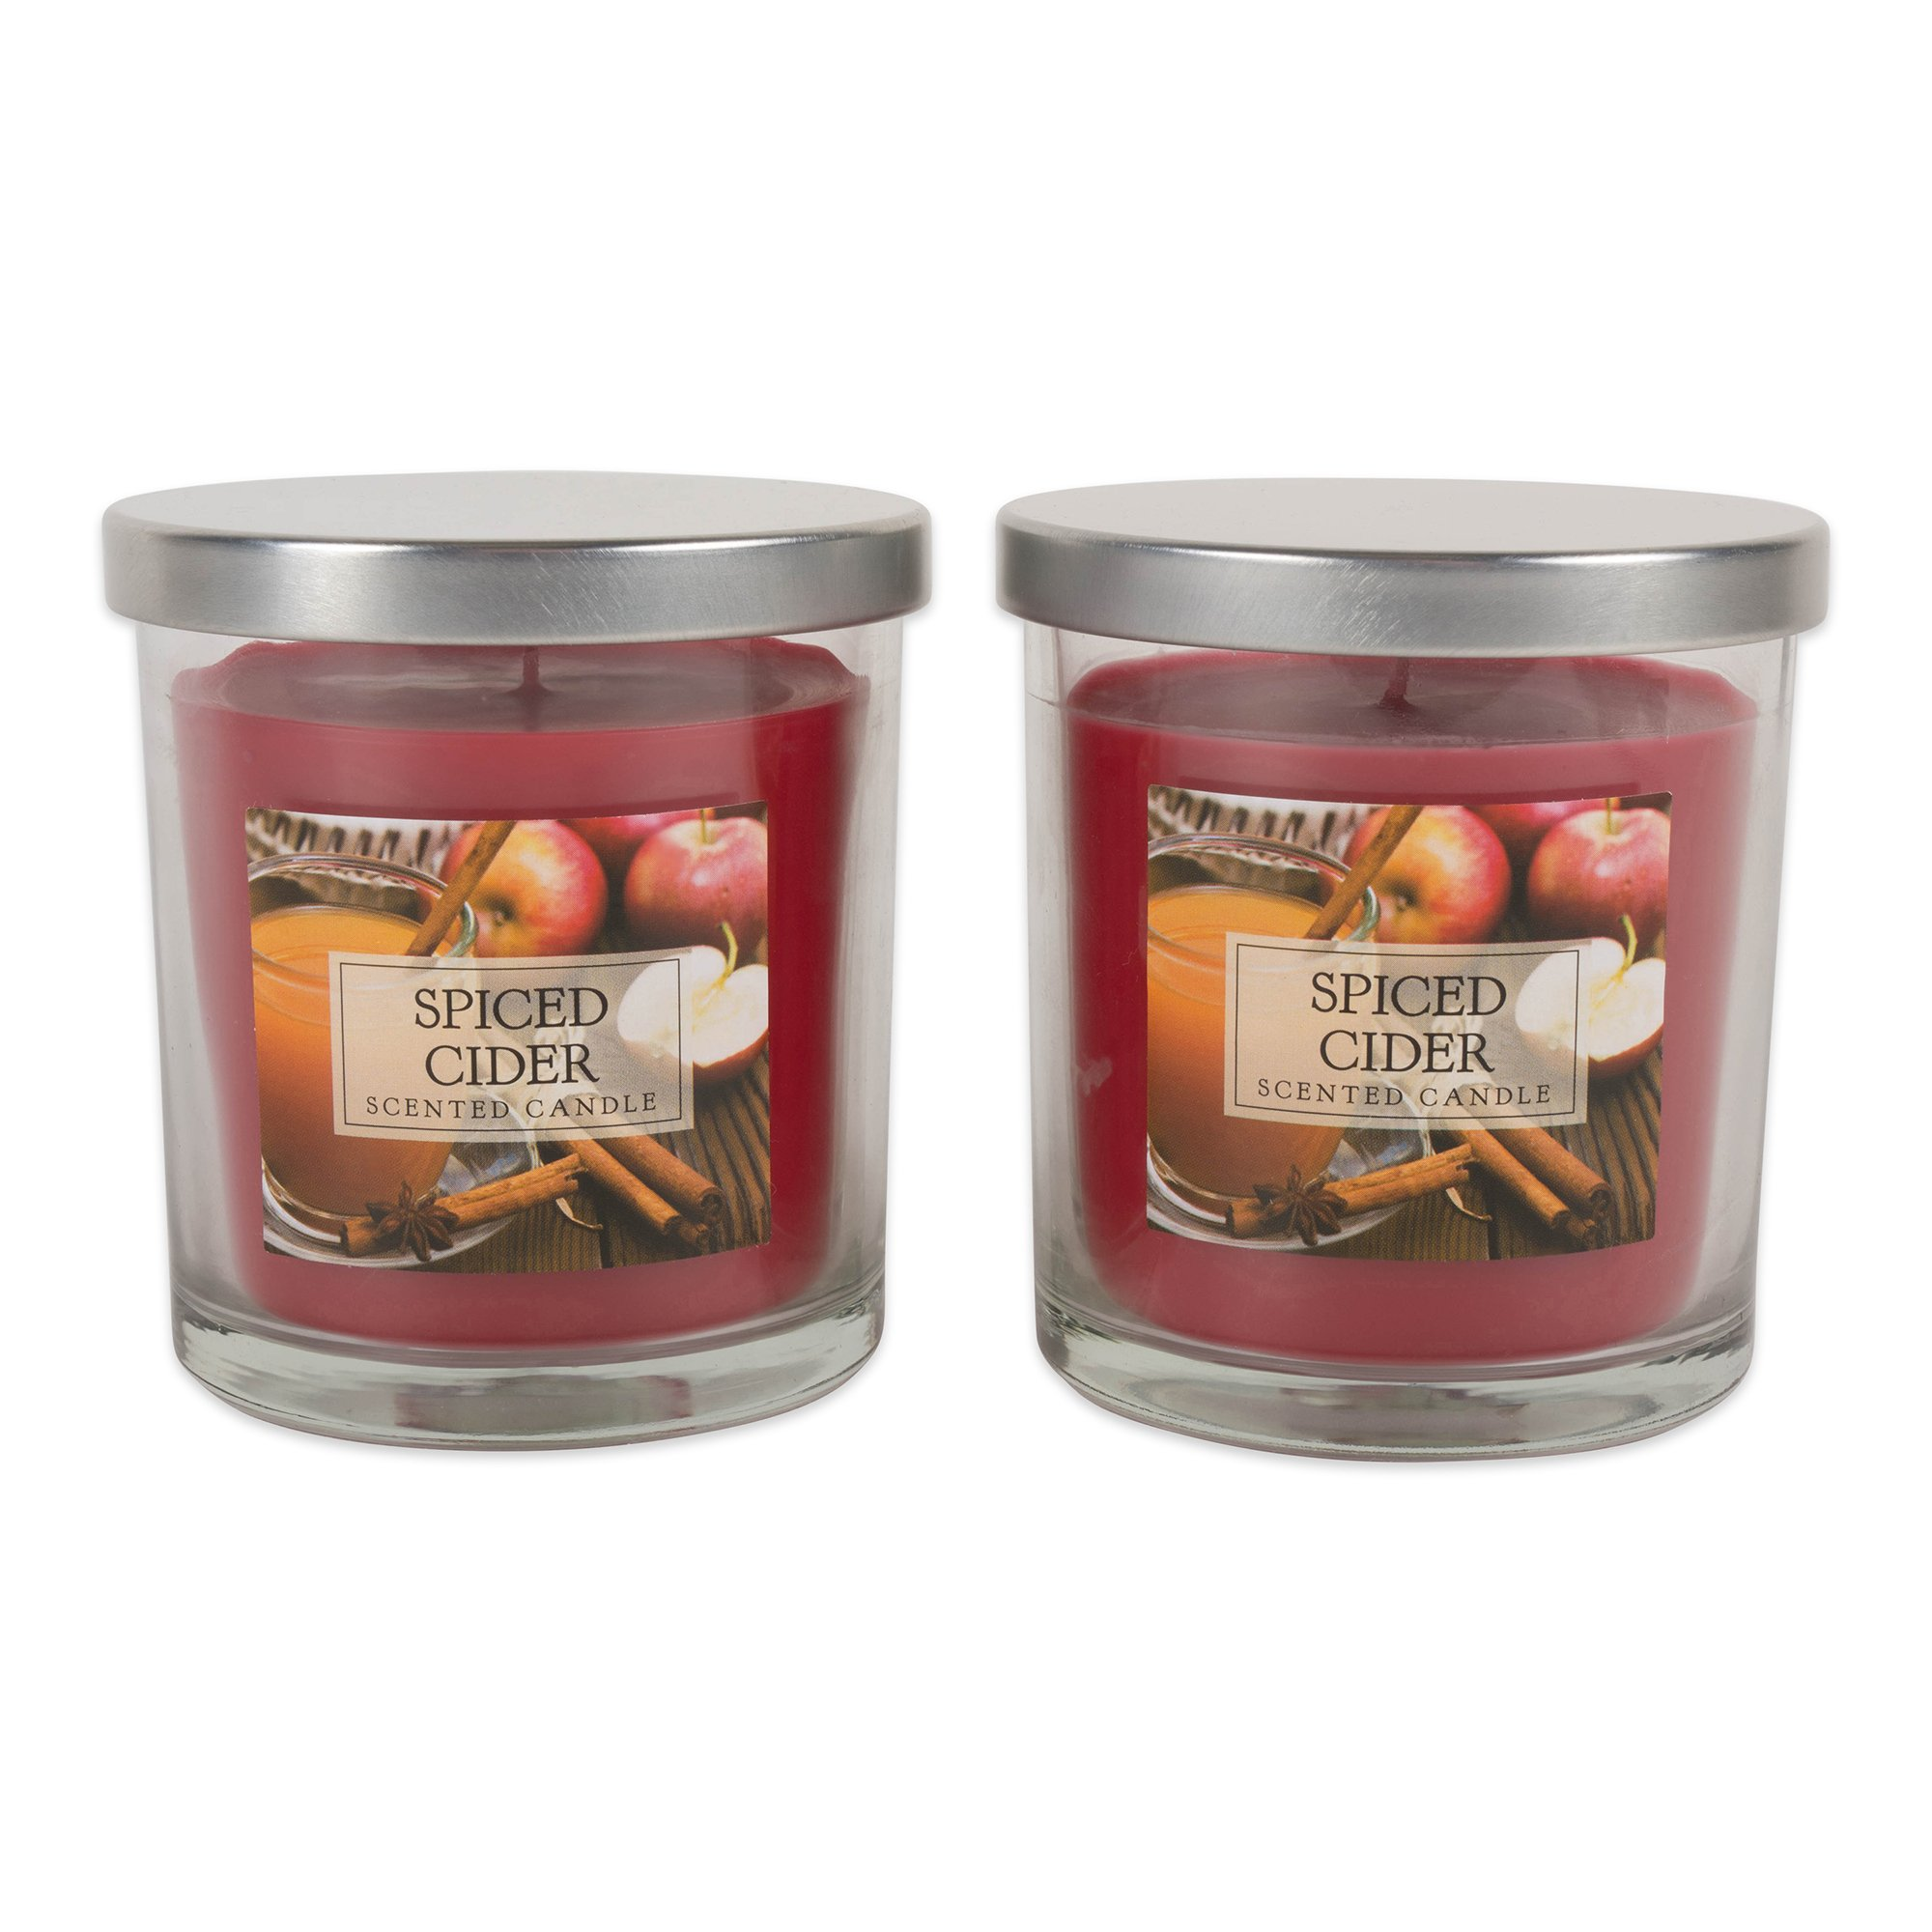 DII Z02105 Single Wick Evenly Burning Highly Scented Jar Candle, 8 oz Each, Spiced Cider by DII